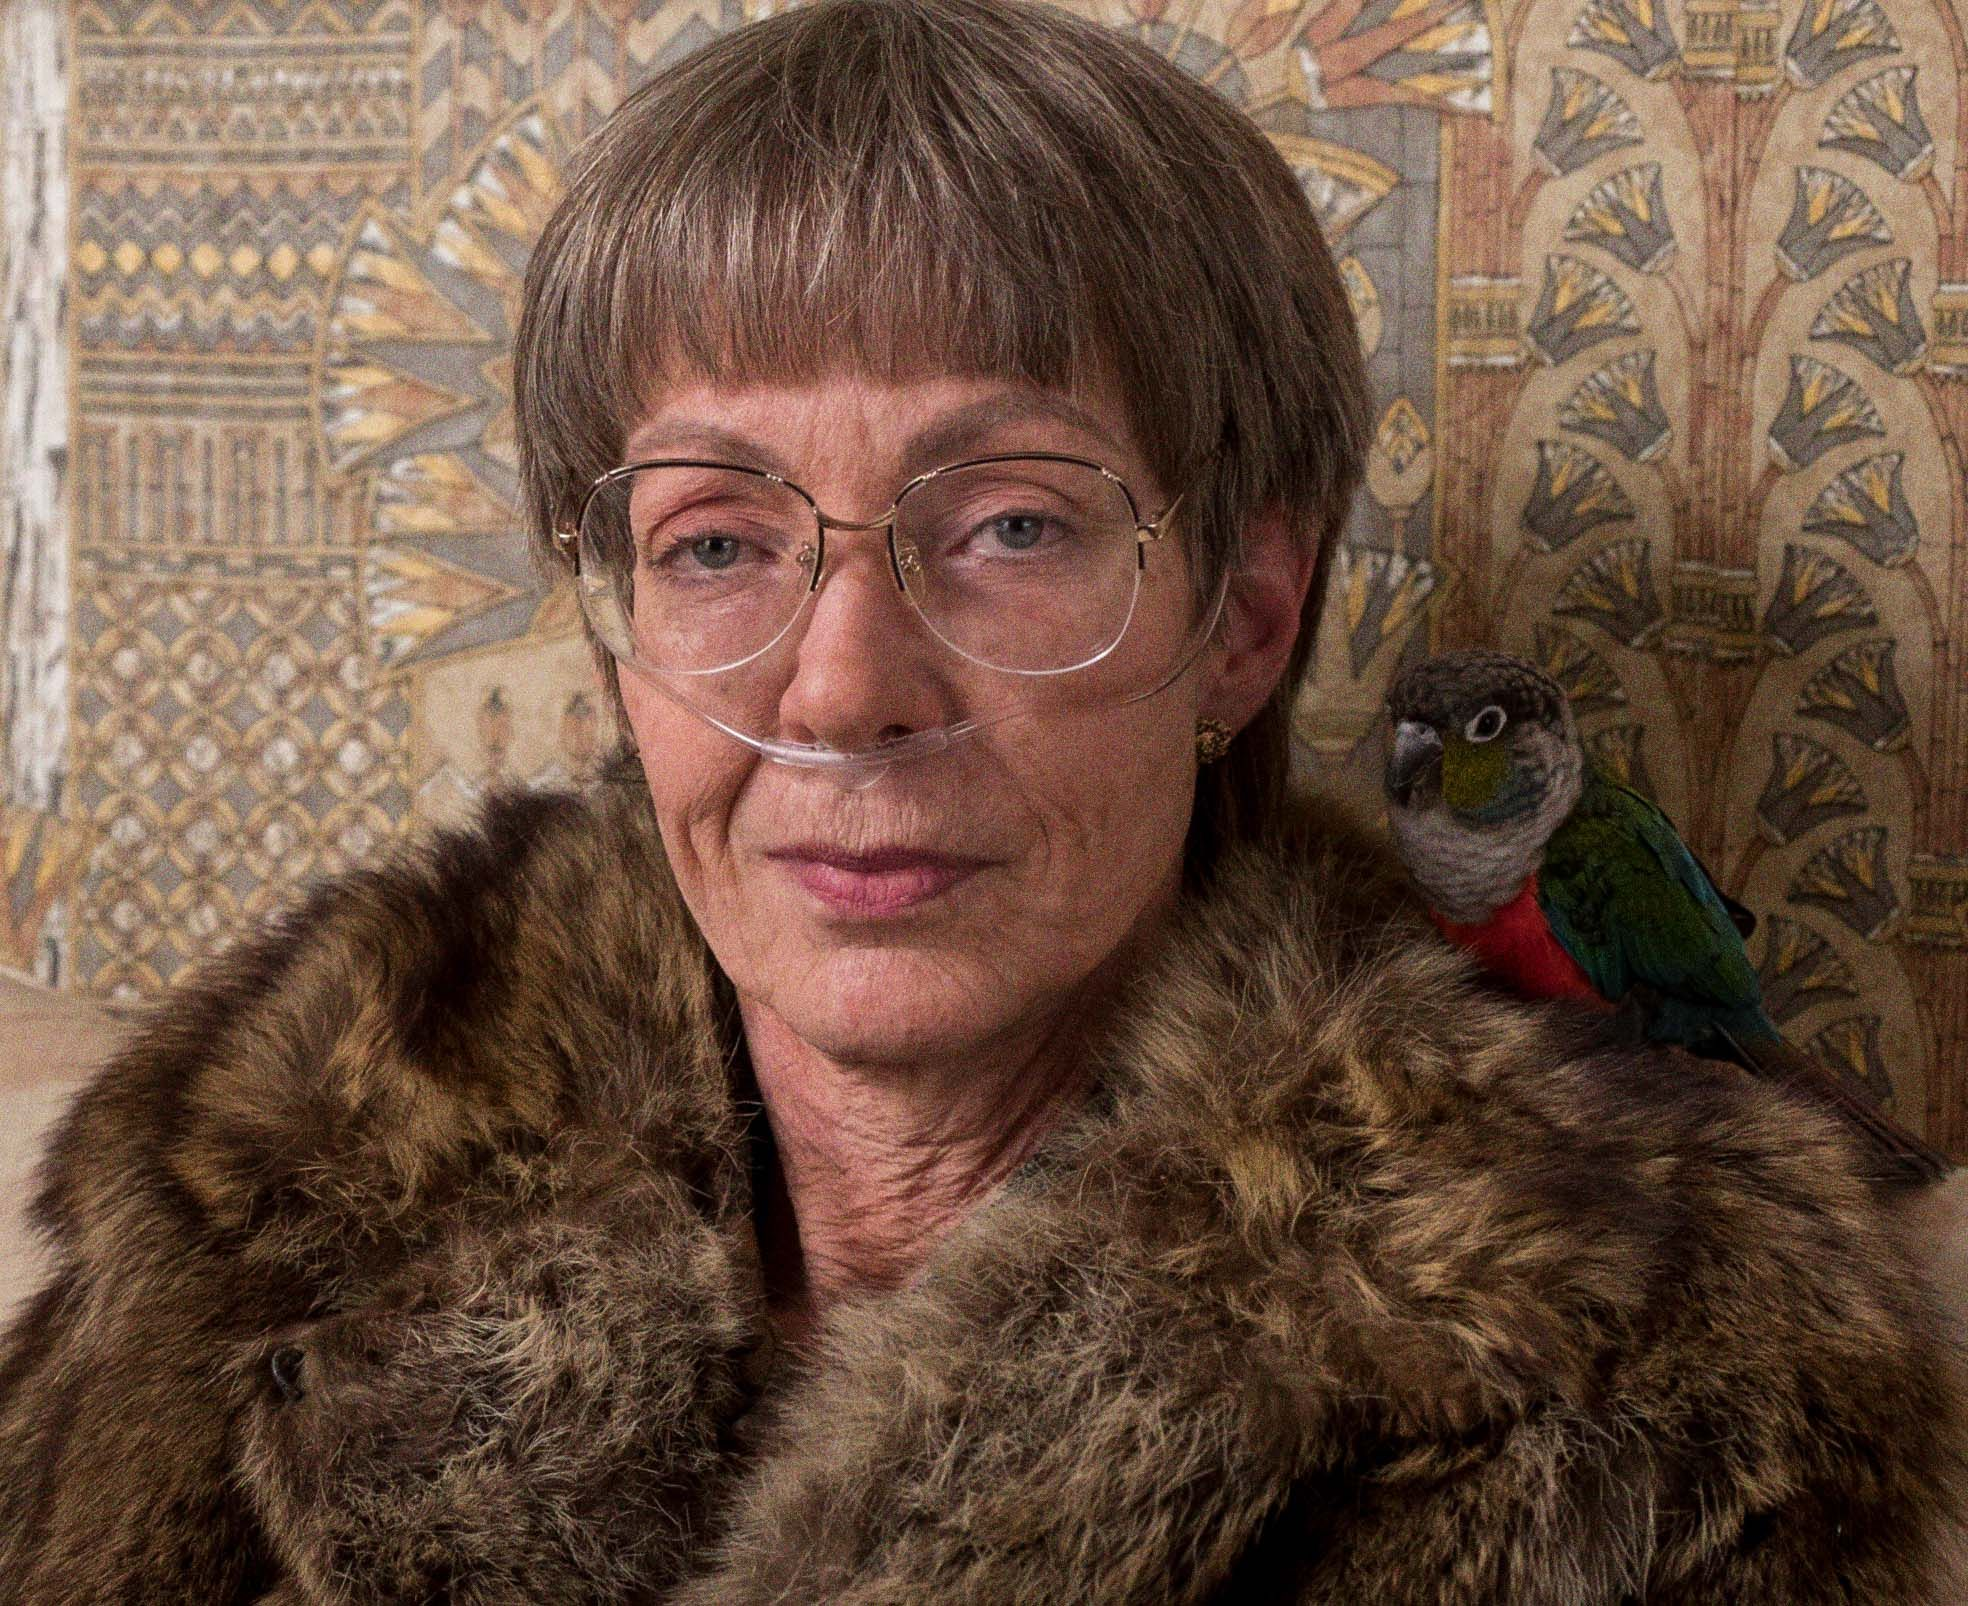 Animal Fur Clithing Porn who is lavona golden? scene-stealing allison janney plays